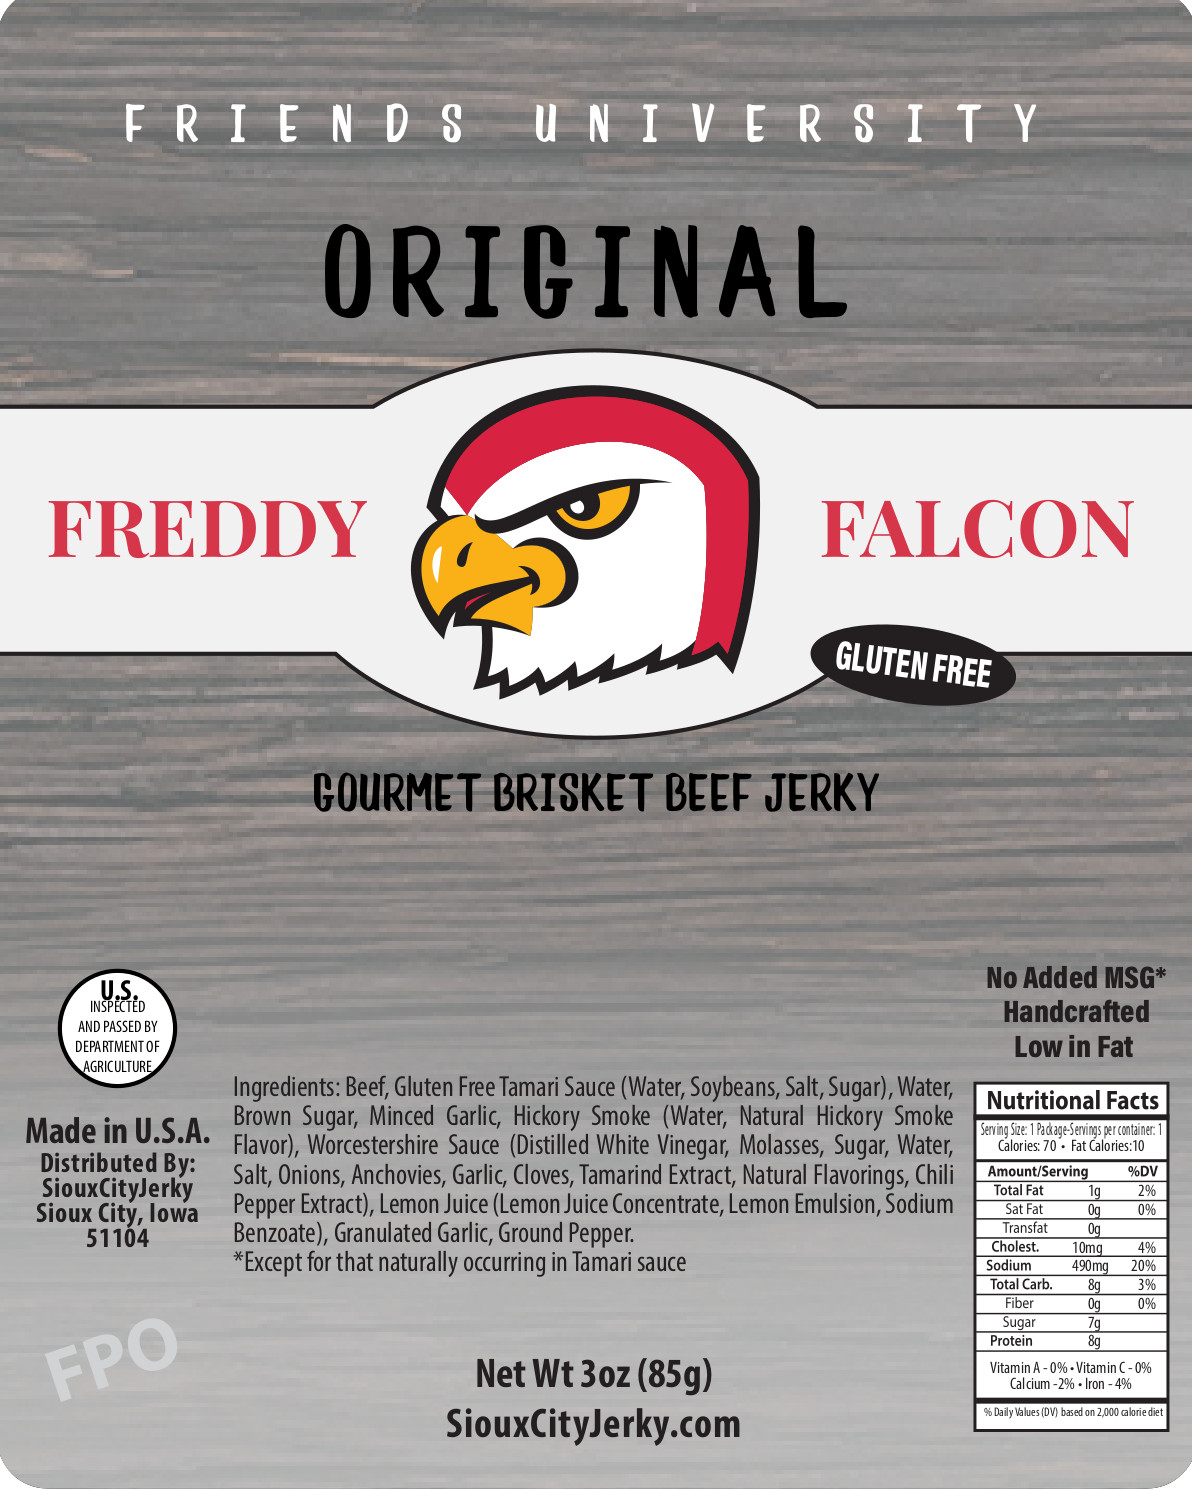 Freddy Falcon Original Beef Jerky